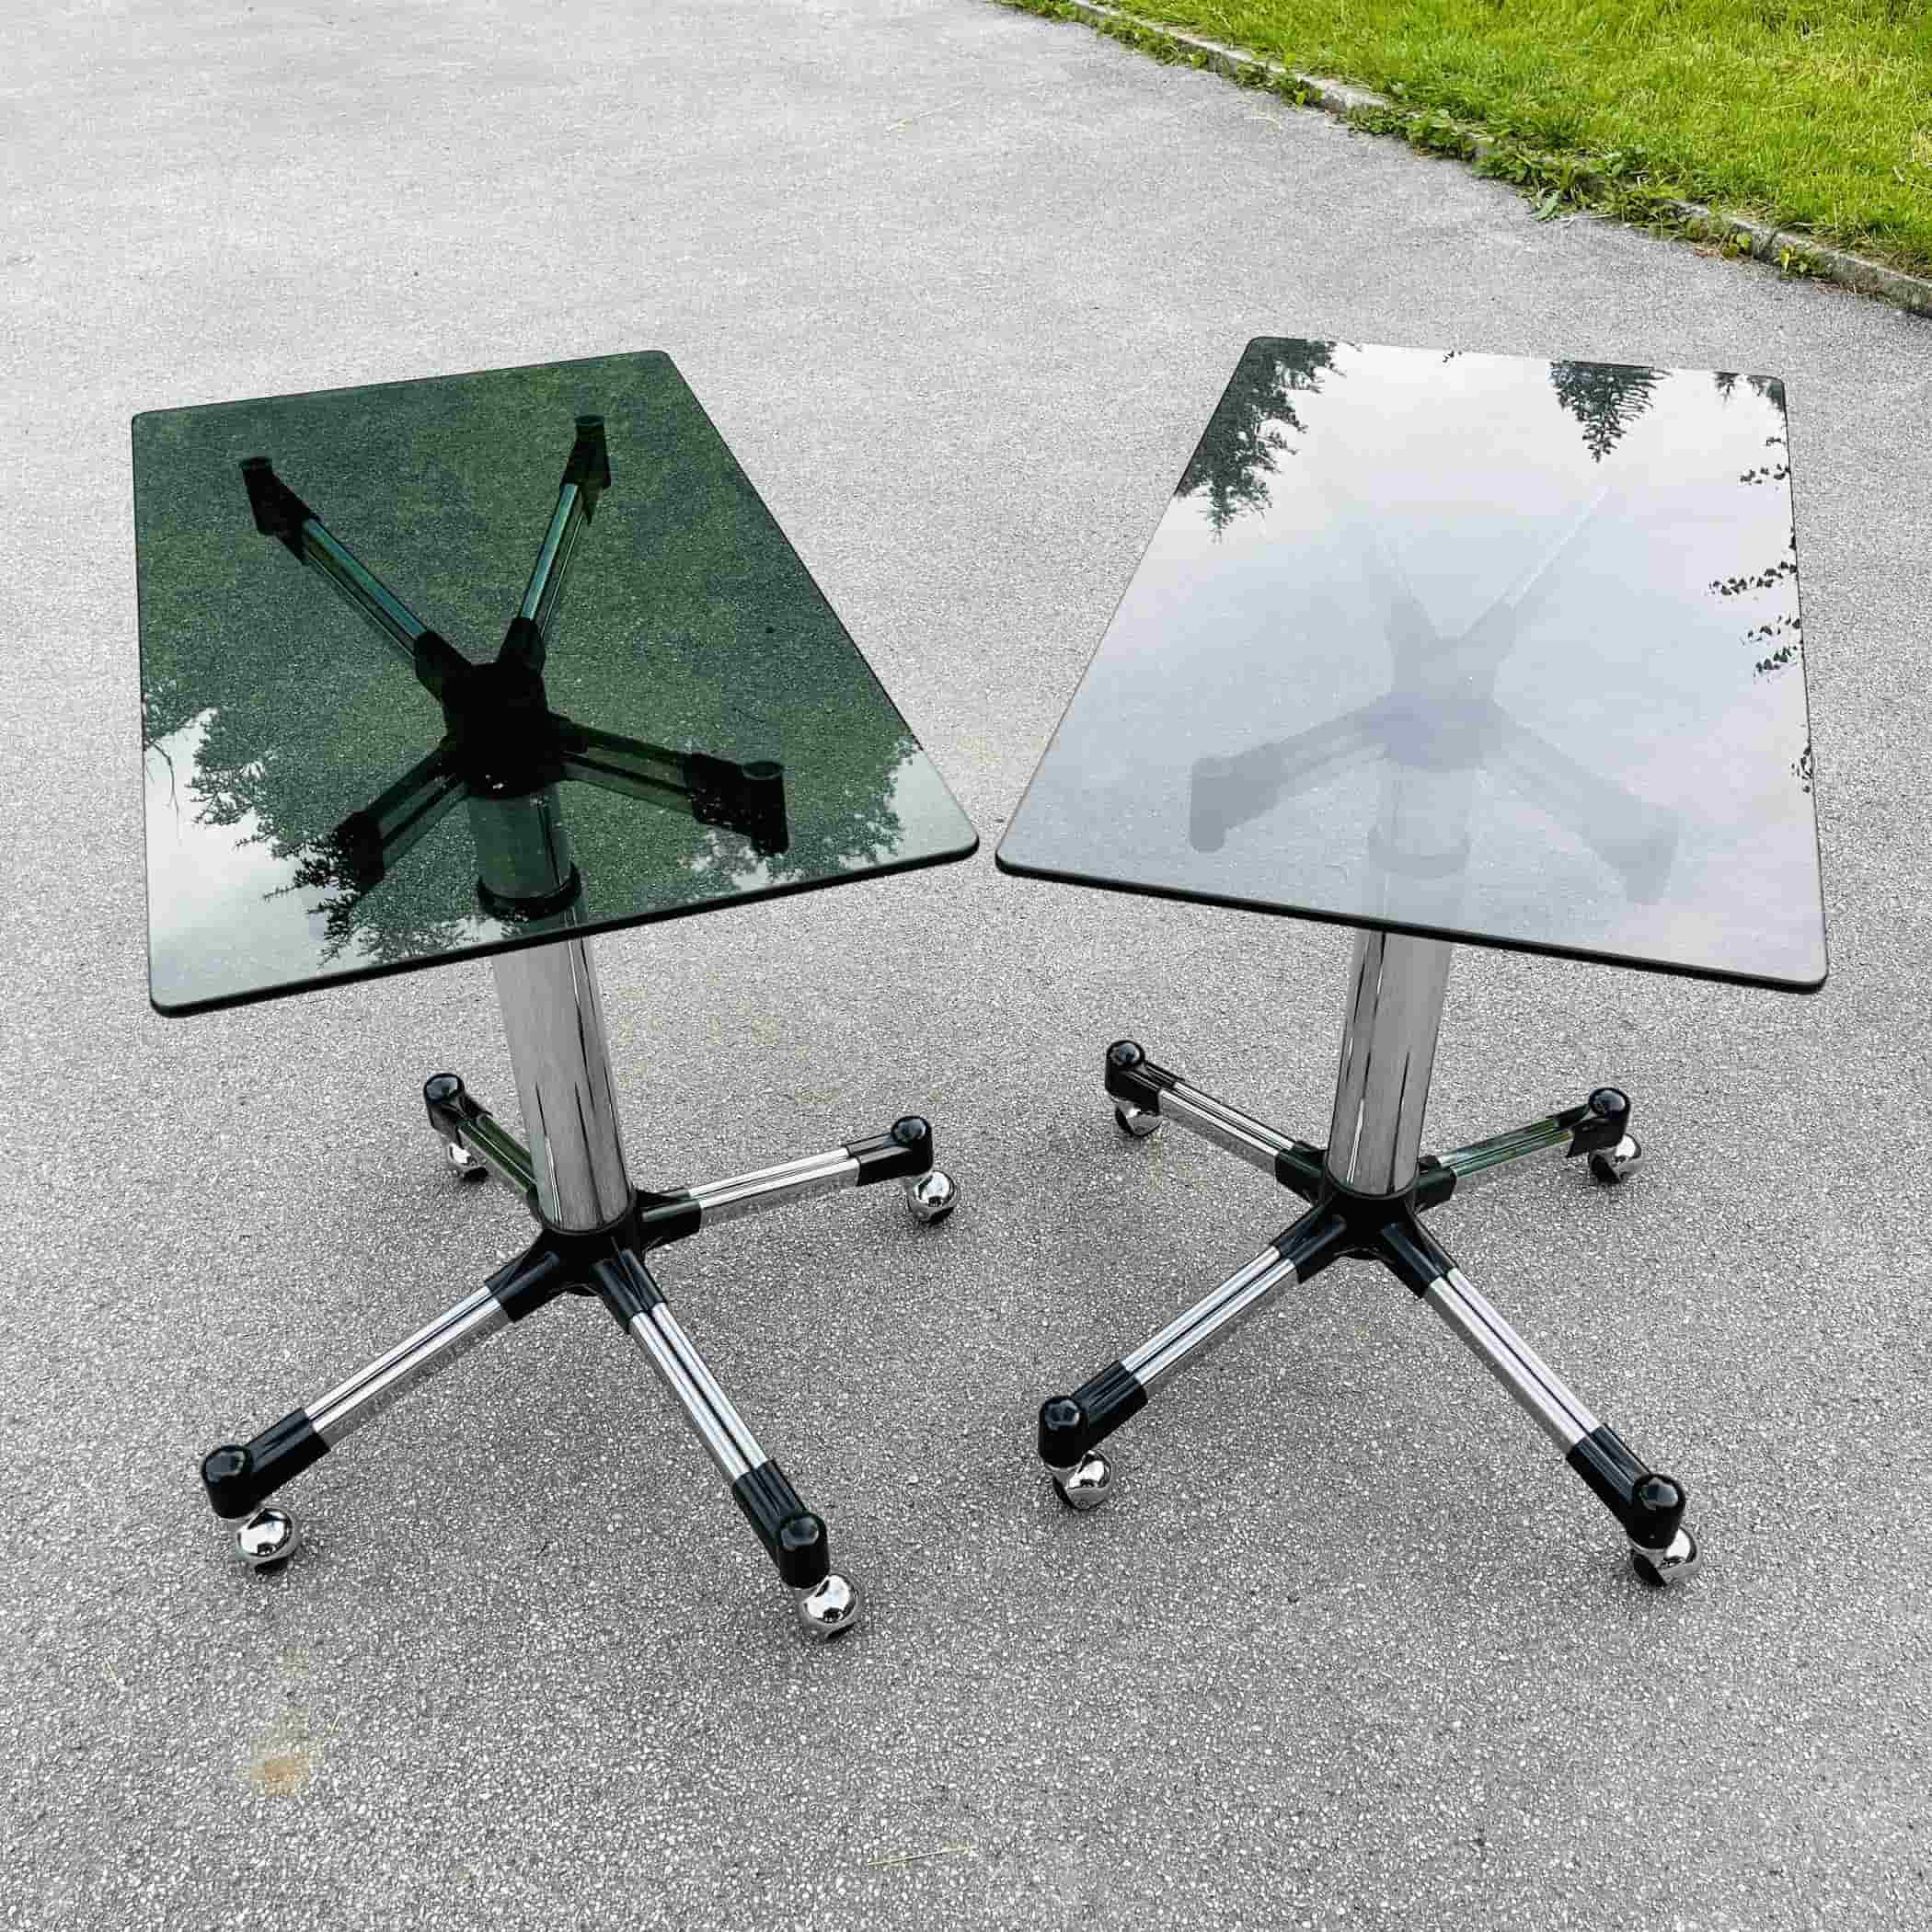 1 of 2 mid-century coffee table or trolley Italy 1980s Vintage smoked glass table Space age Italian modern